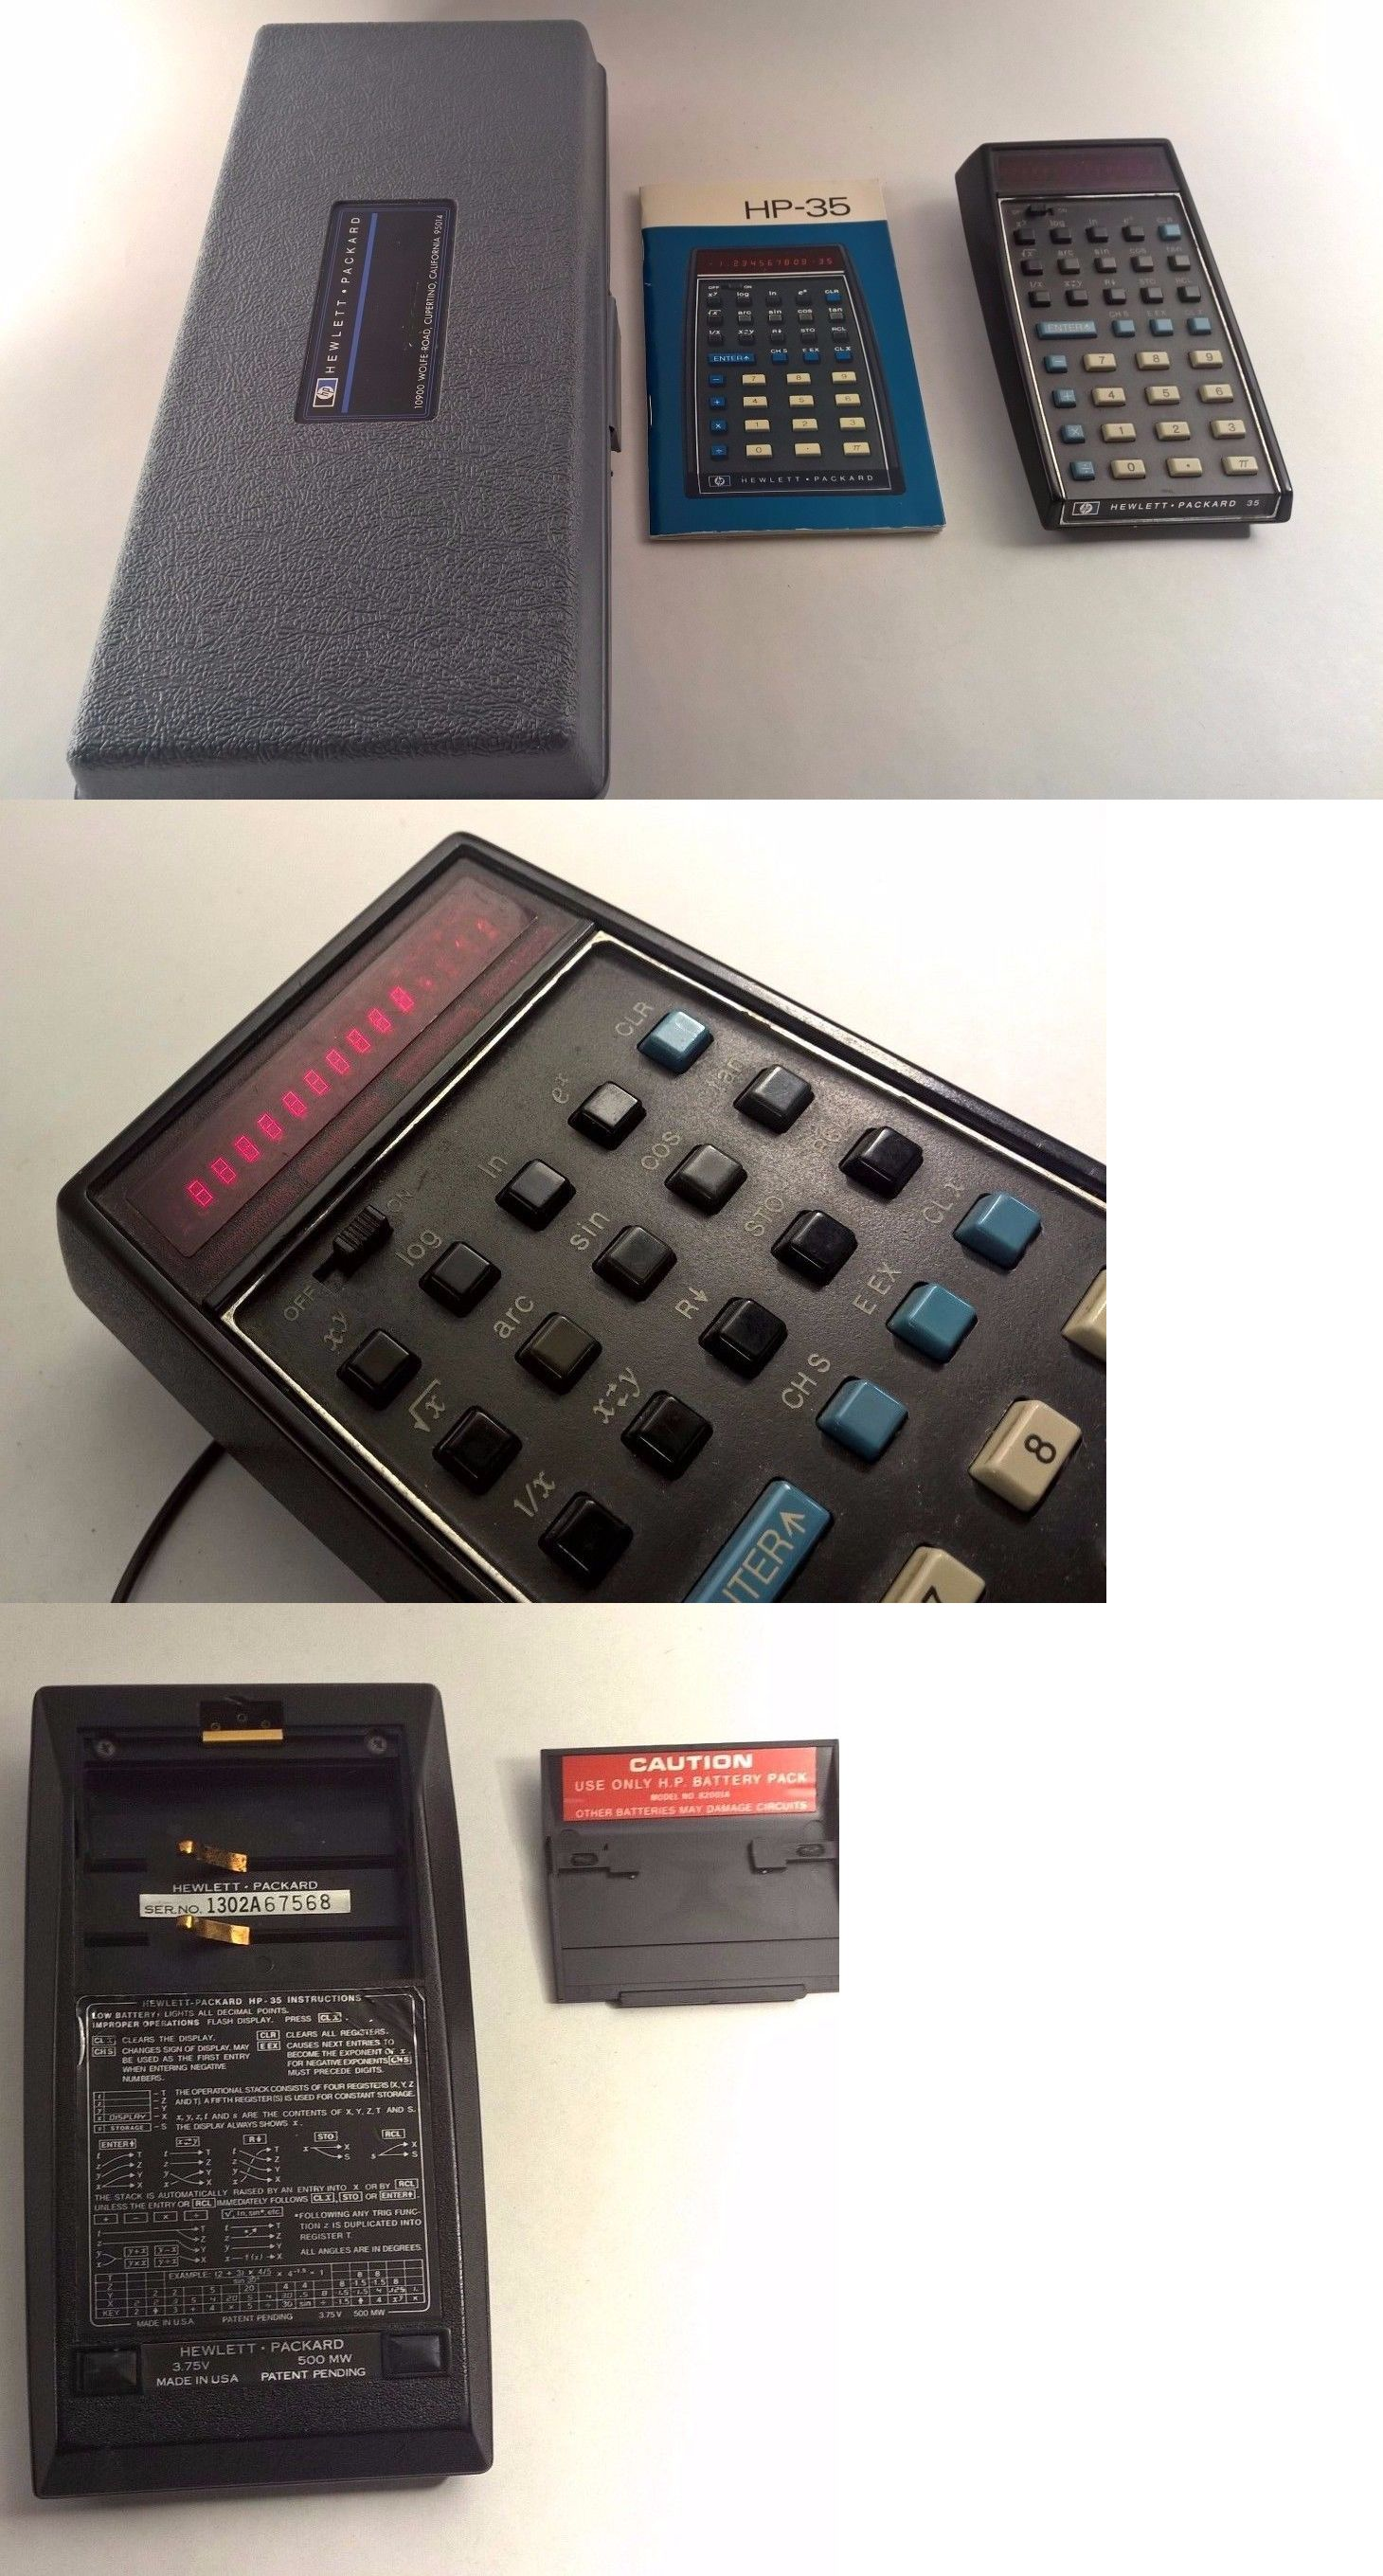 Vintage Calculators Hewlett Packard Hp 35 Vintage Scientific Calculator Case And Manual Works Buy It Now Onl Scientific Calculators Hewlett Packard Hewlett